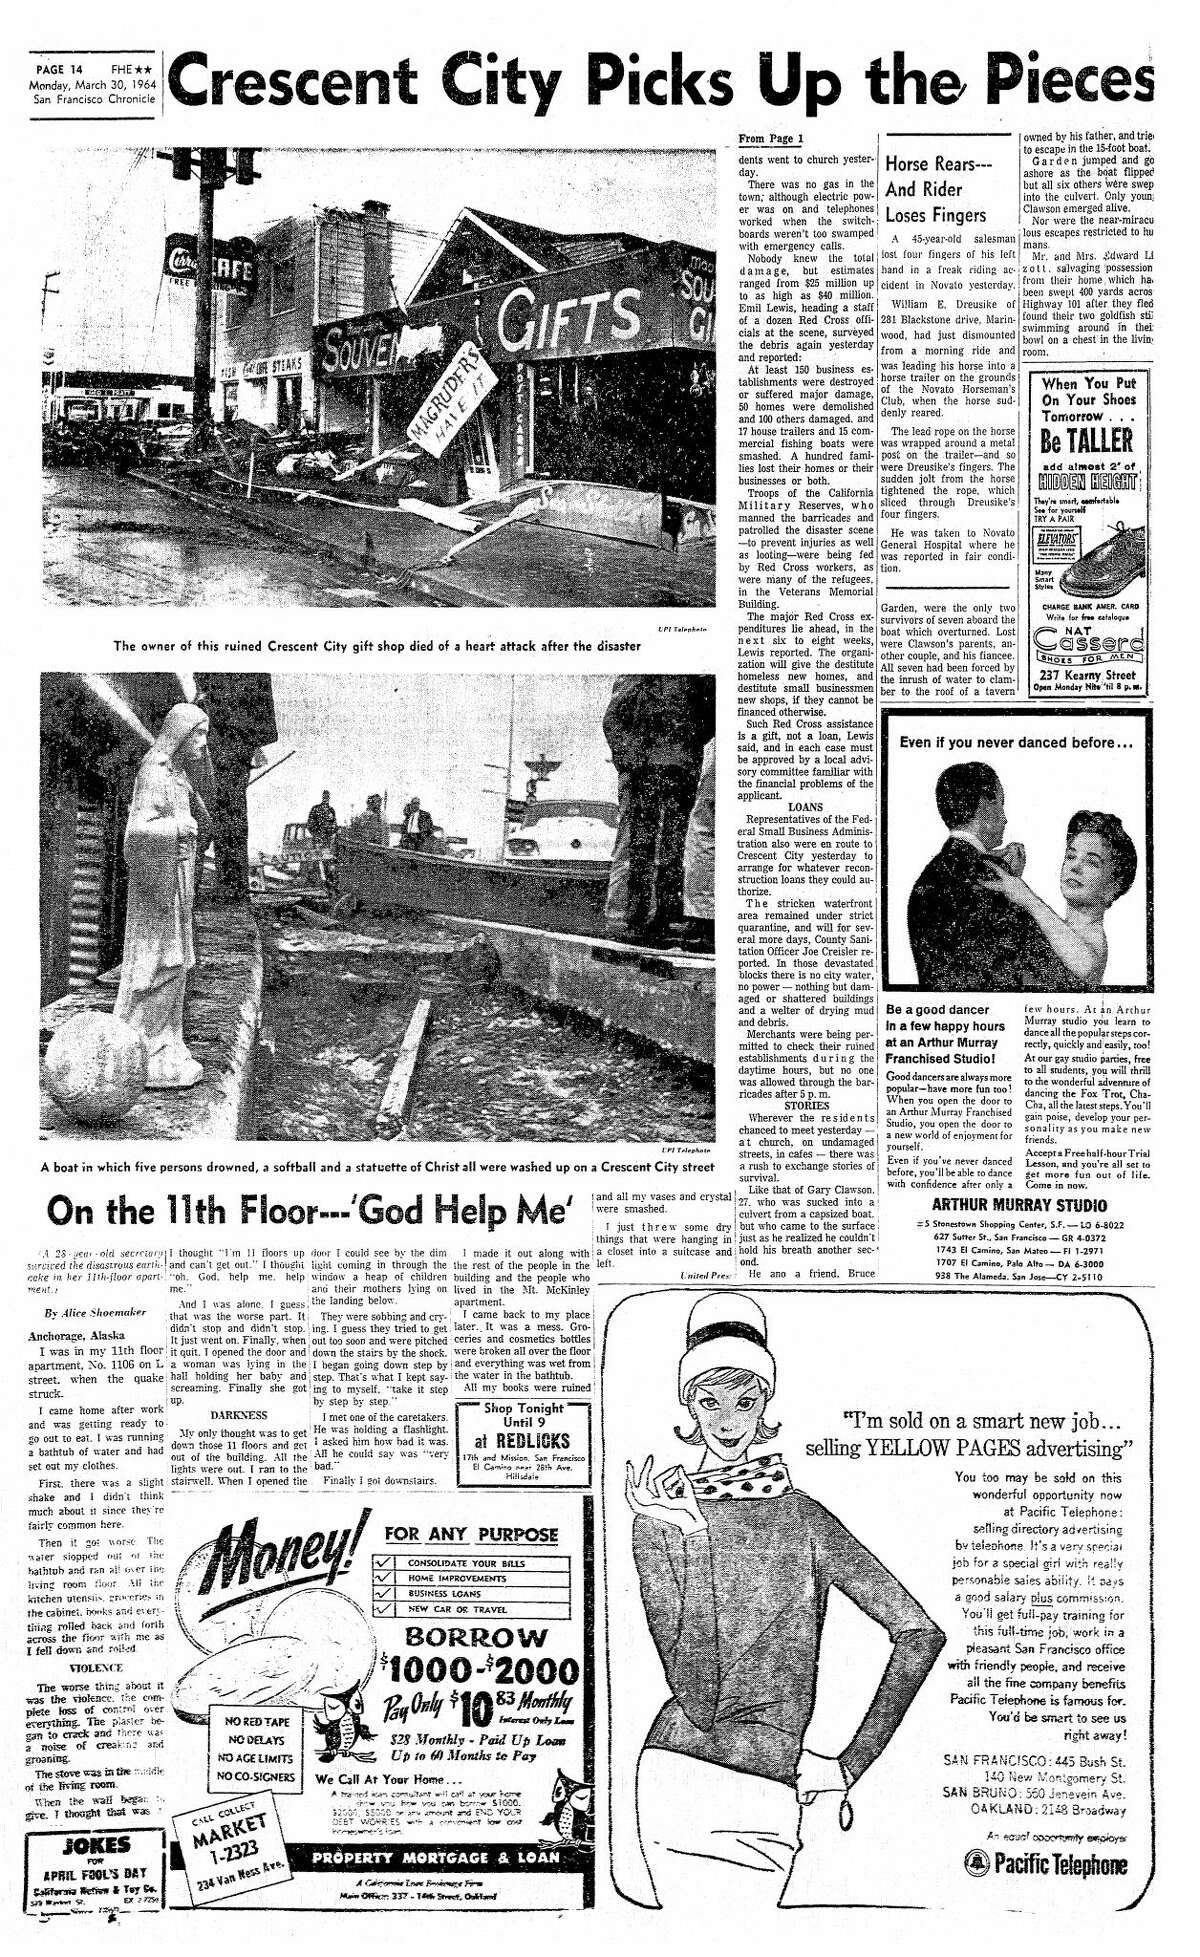 The San Francisco Chronicle reports on the 1964 tsunami that caused severe damage in Crescent City, Calif. It was triggered by a 9.2 earthquake in Alaska.